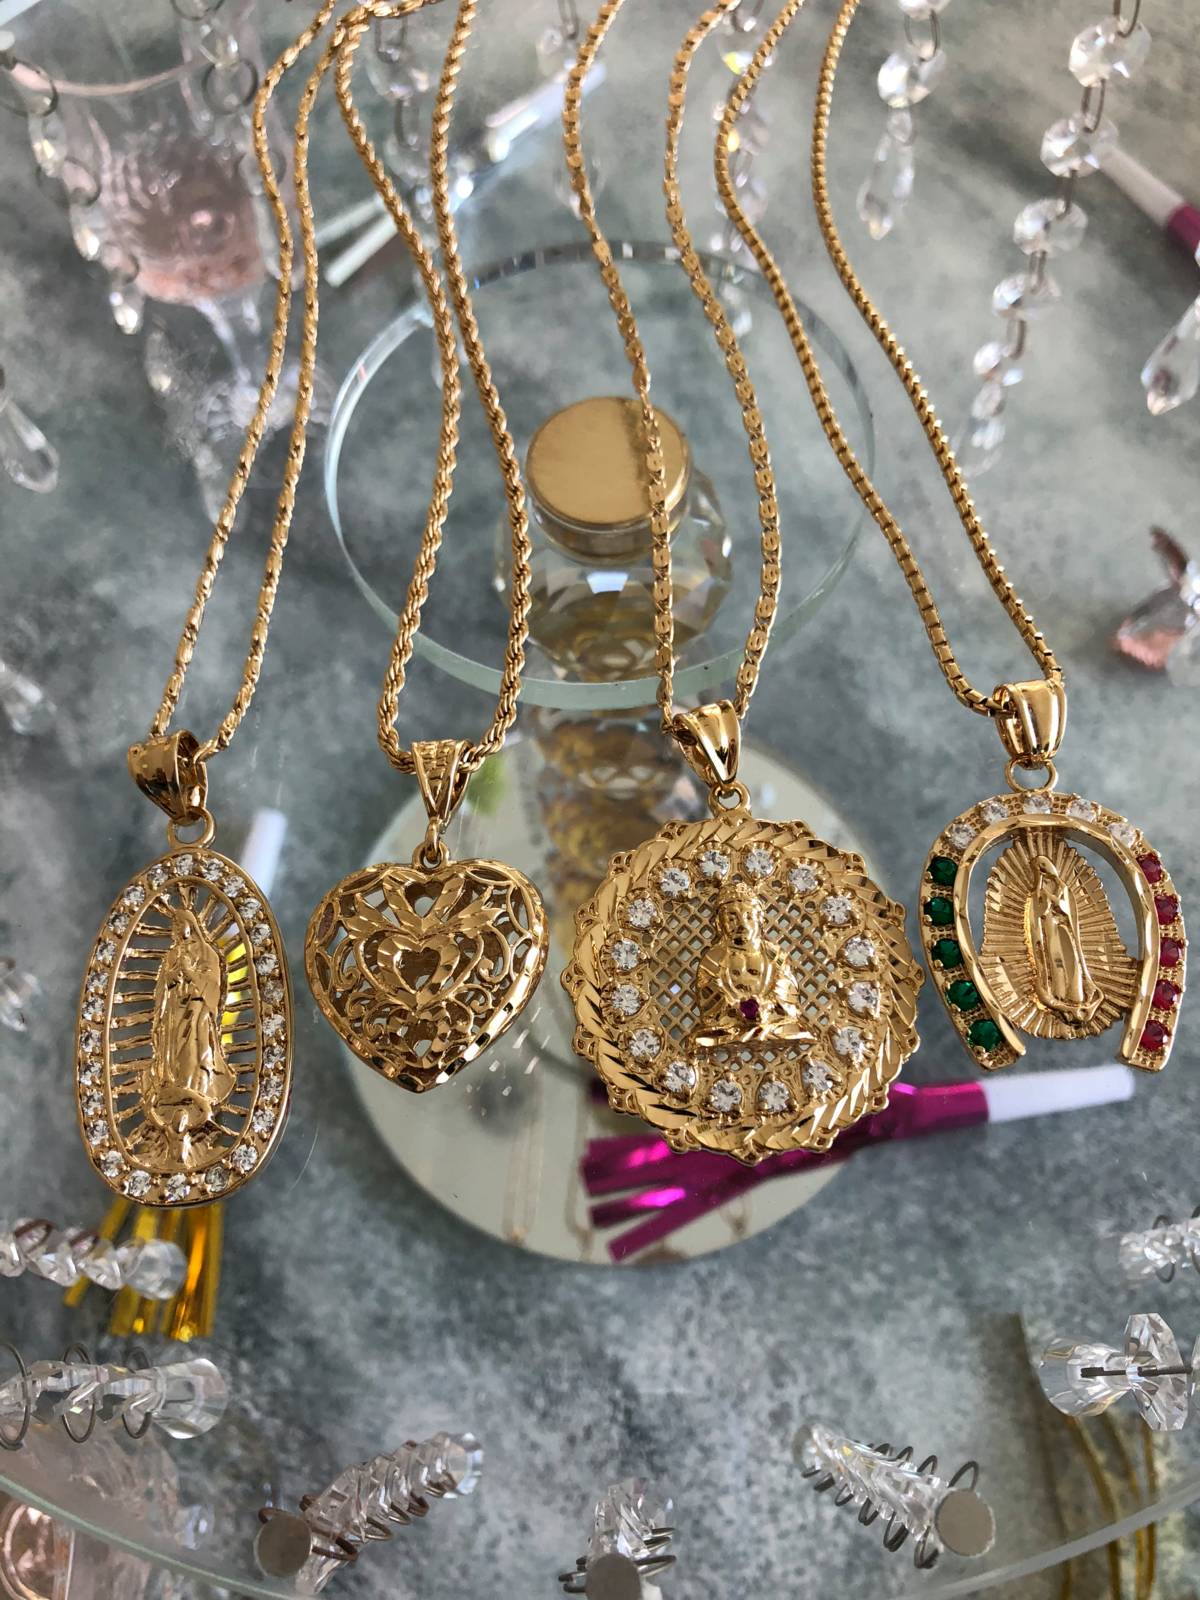 The Buddha Necklace